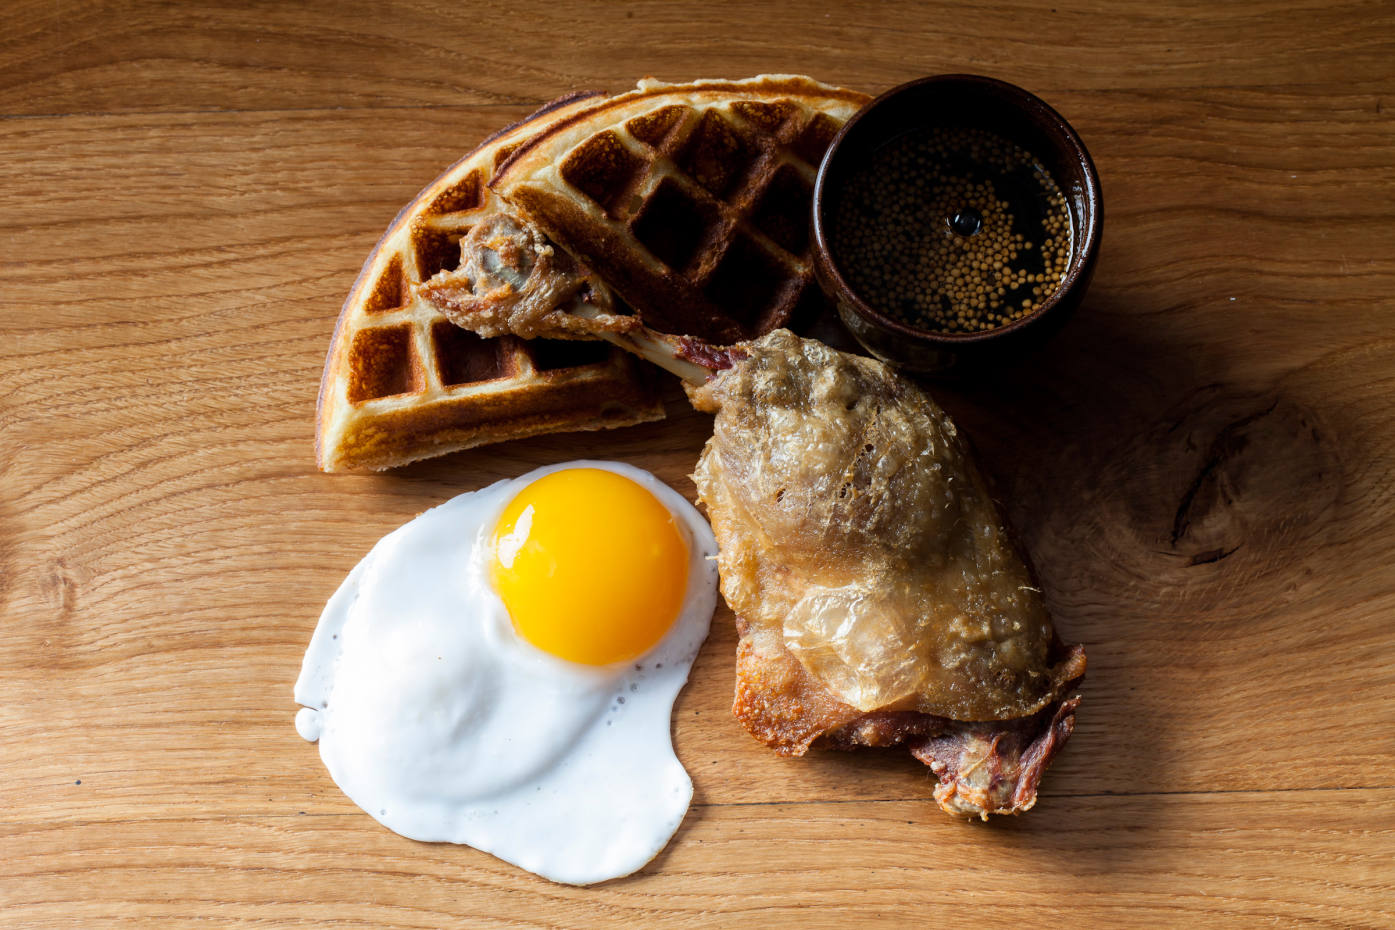 The restaurant's delicious signature dish: crispy duck and waffle